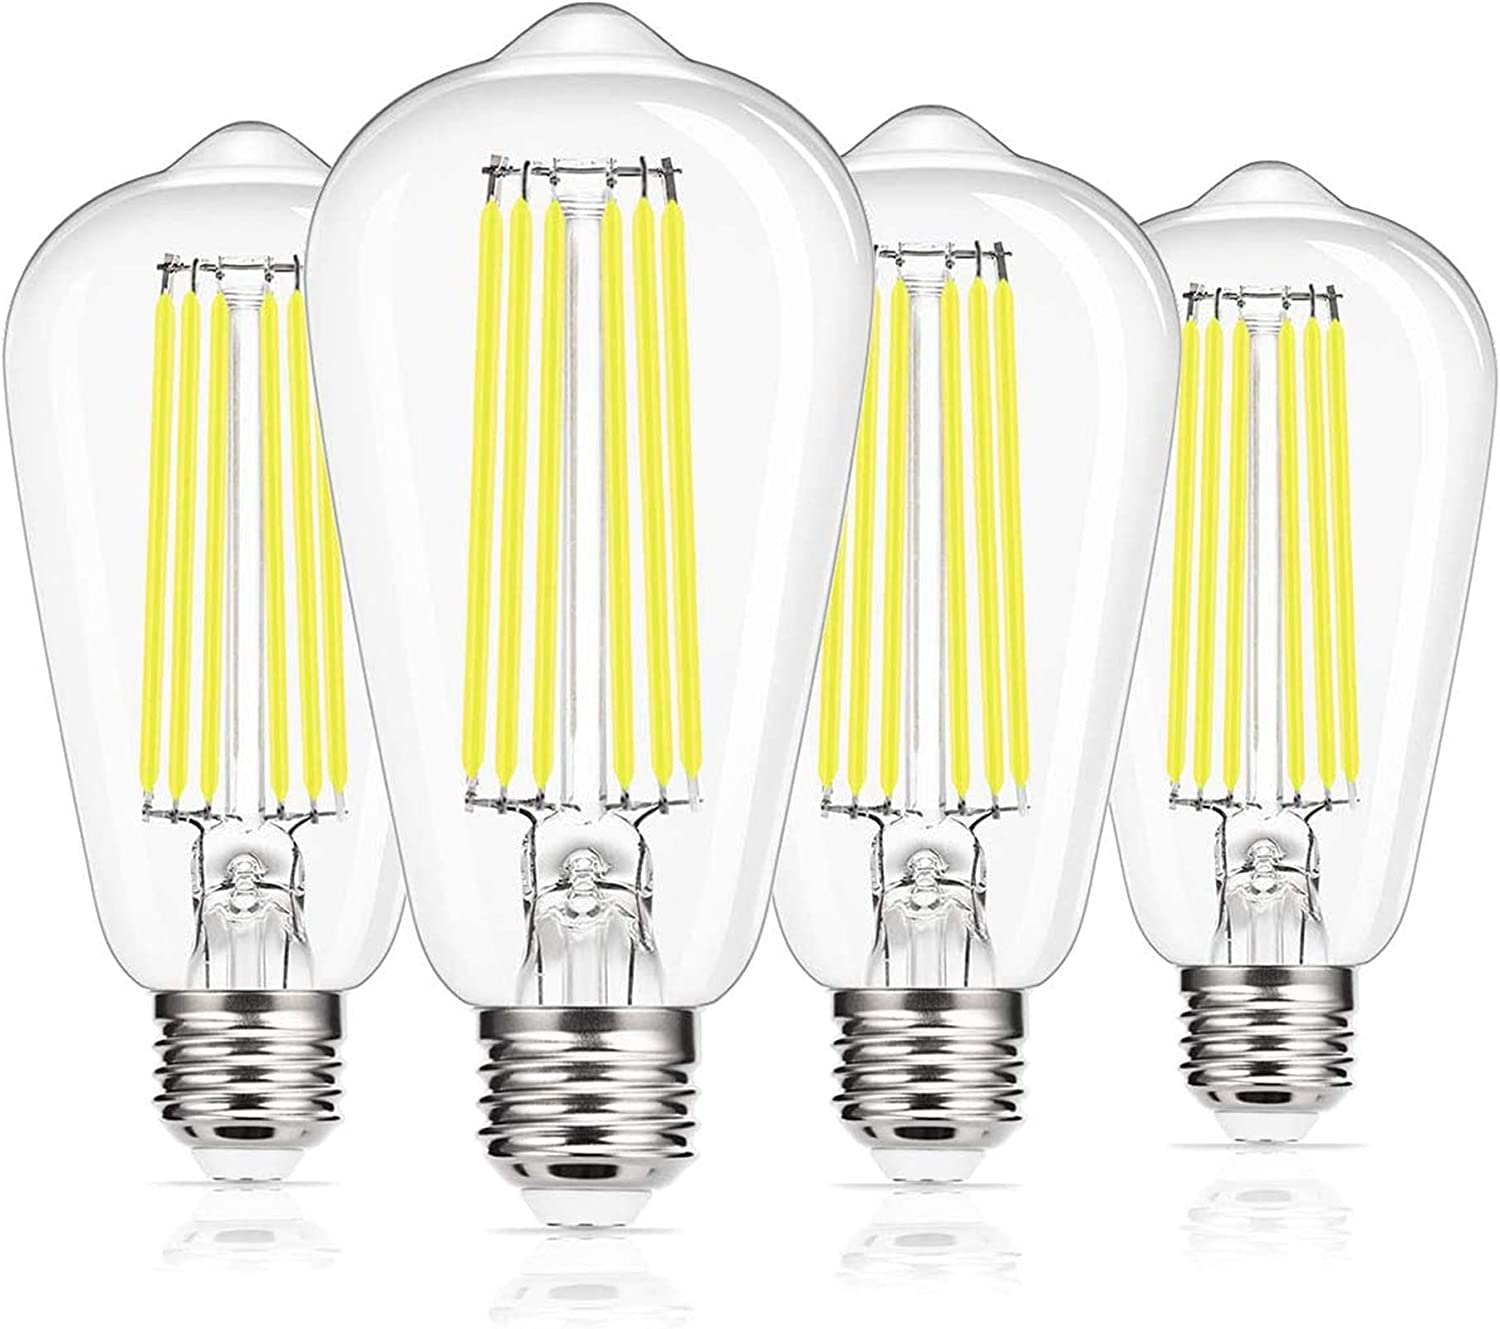 Vintage Led Edison Bulb, DORESshop ST64 Filament LED Light Bulb, E26 Base, 15W(150W Equivalent), 1800LM, Cool White 5000K, Clear Glass Light Bulb for Home, Office, Non-dimmable, 4 Pack